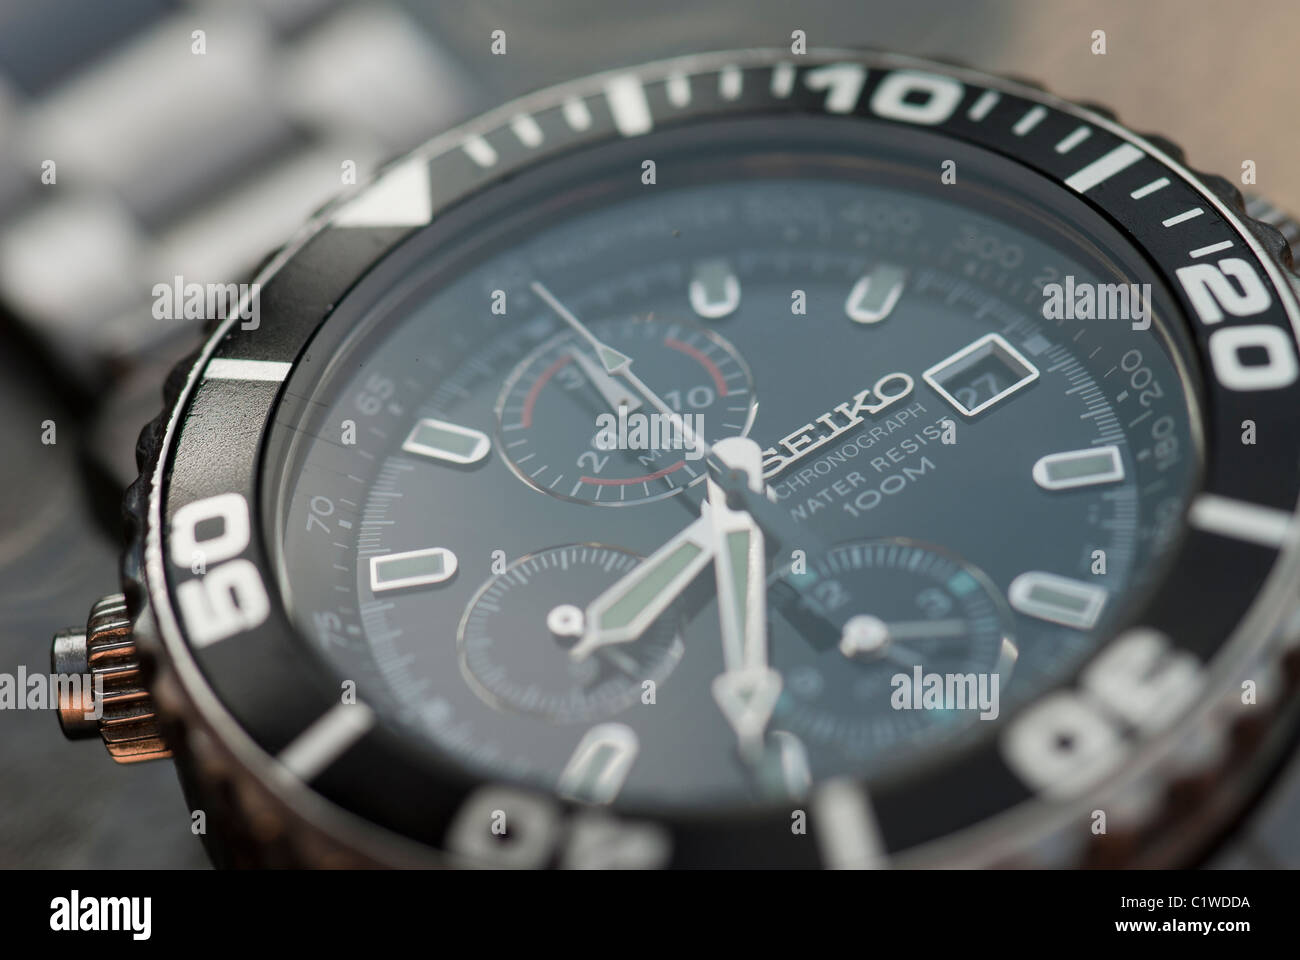 Close up of Chronograph Watch - Stock Image